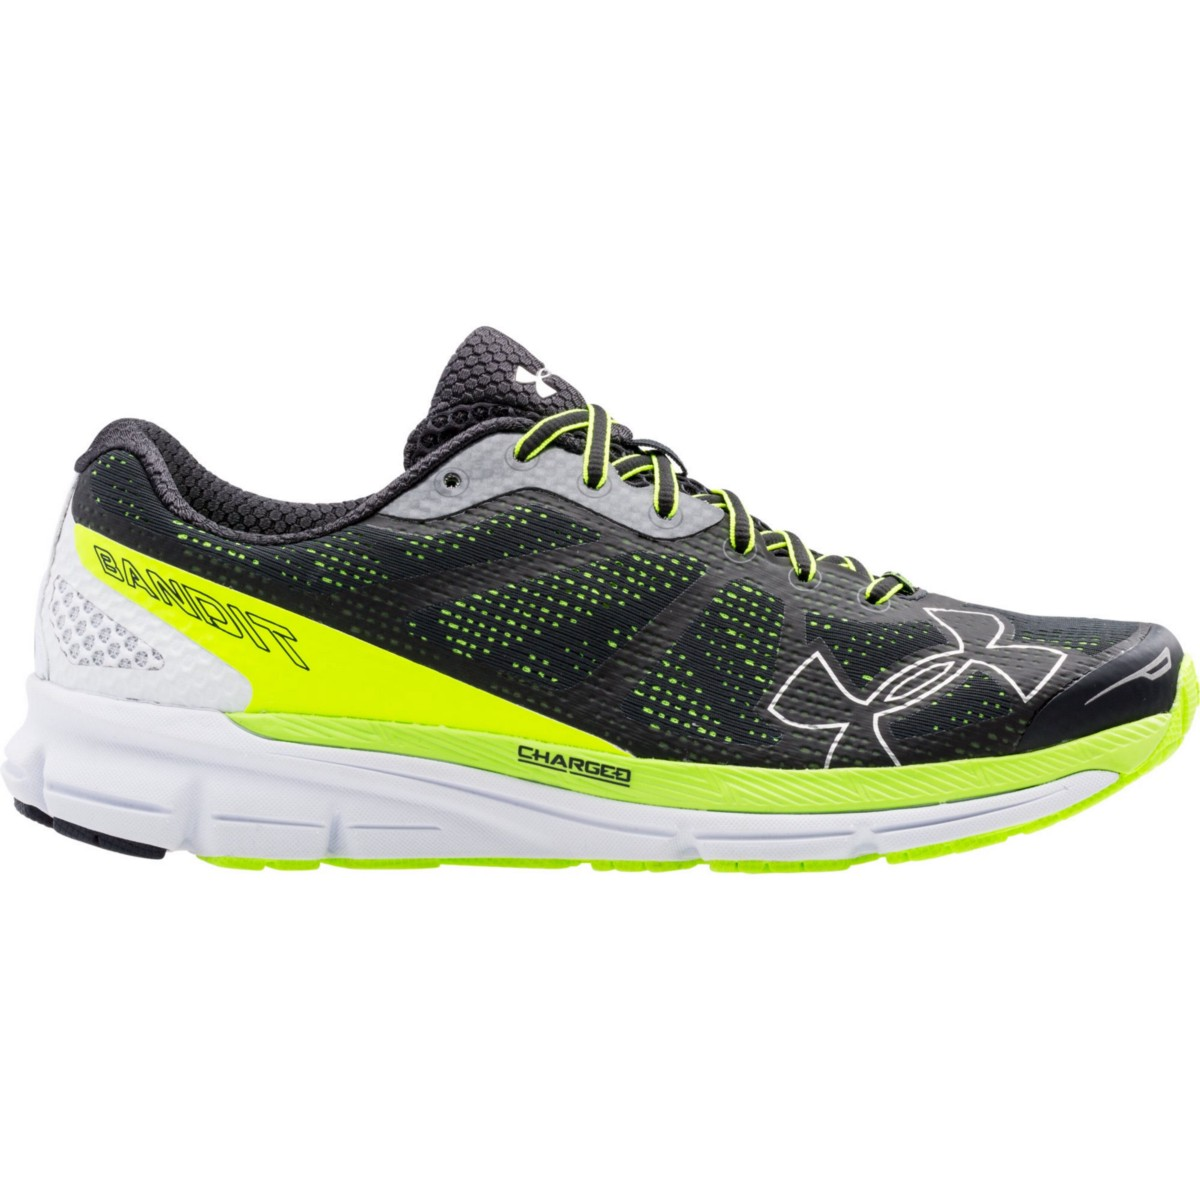 Proper Running Form Stability Shoes